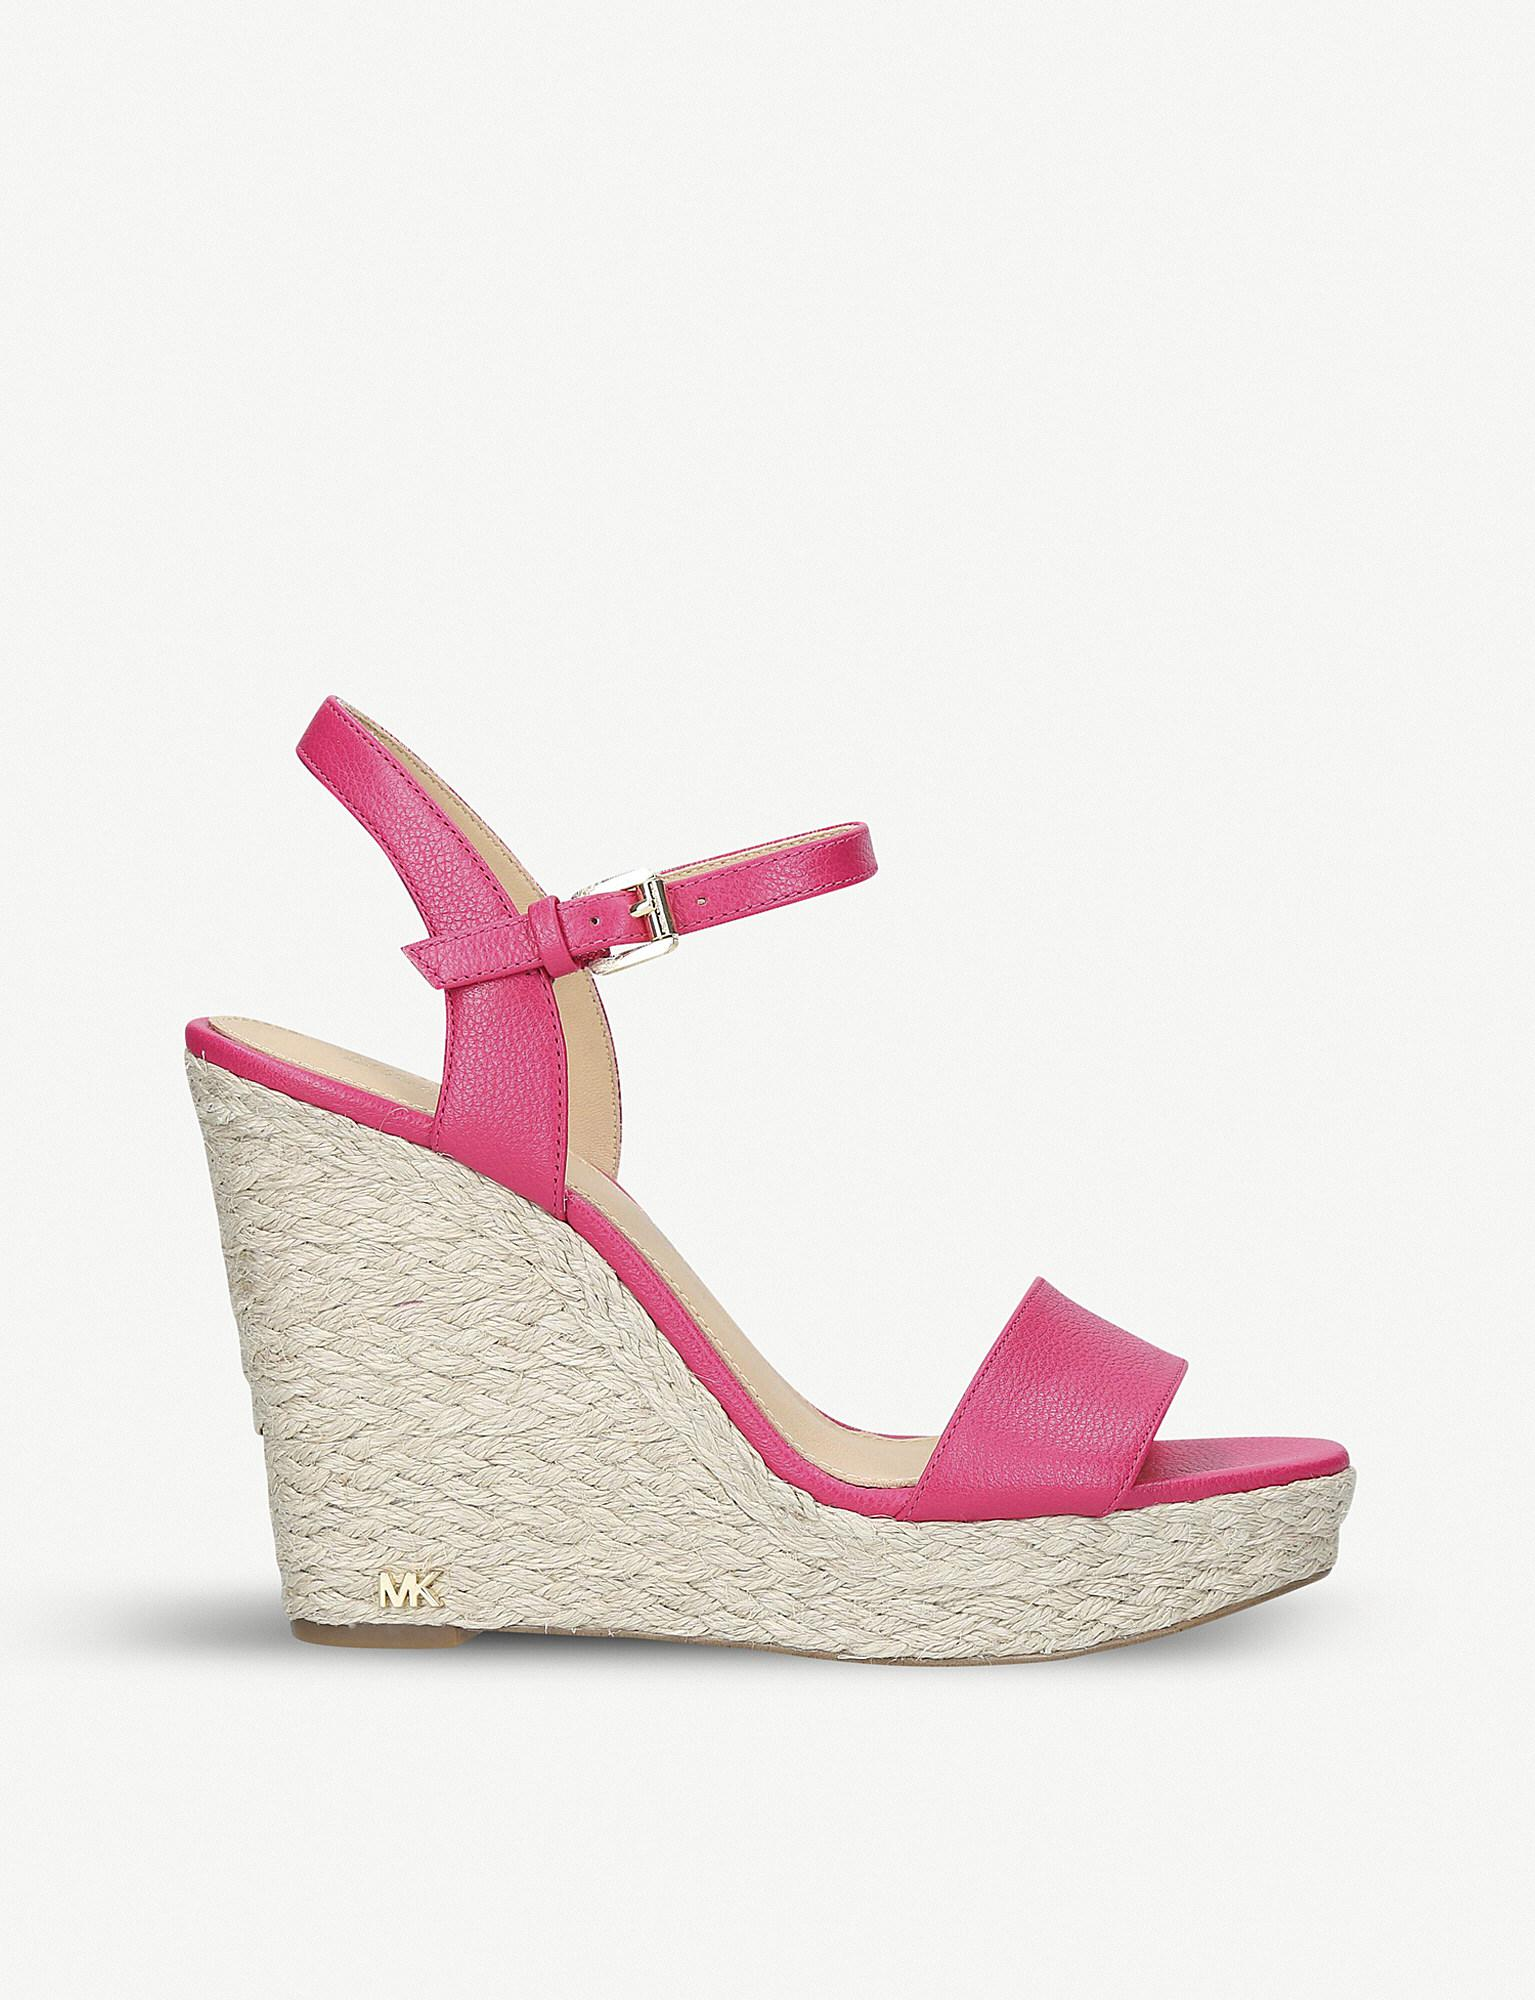 b46463ca76c MICHAEL Michael Kors Jill Leather Wedge Sandals in Pink - Lyst